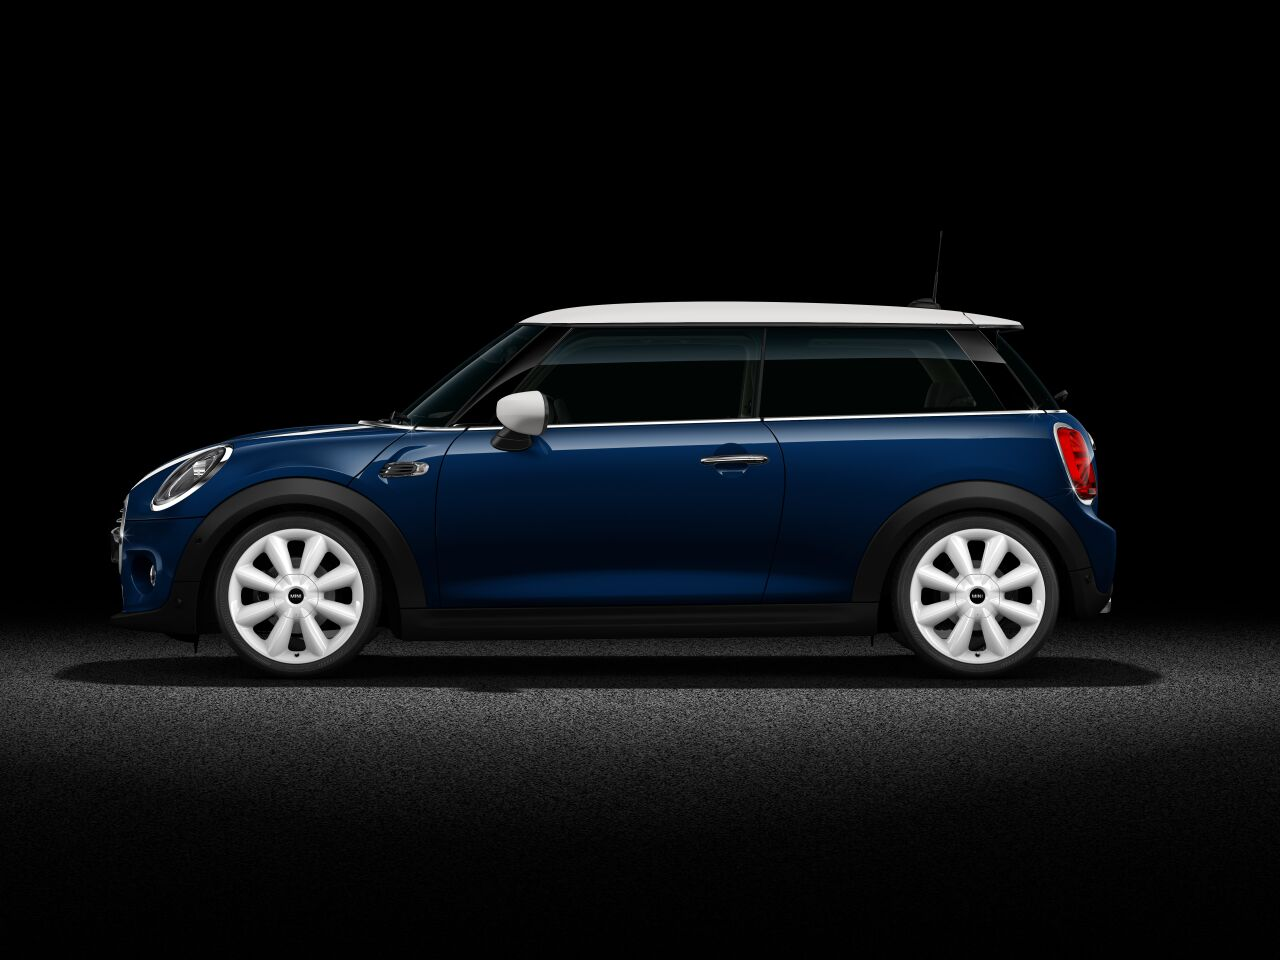 MINI Cooper D 3 Door Side profile full body